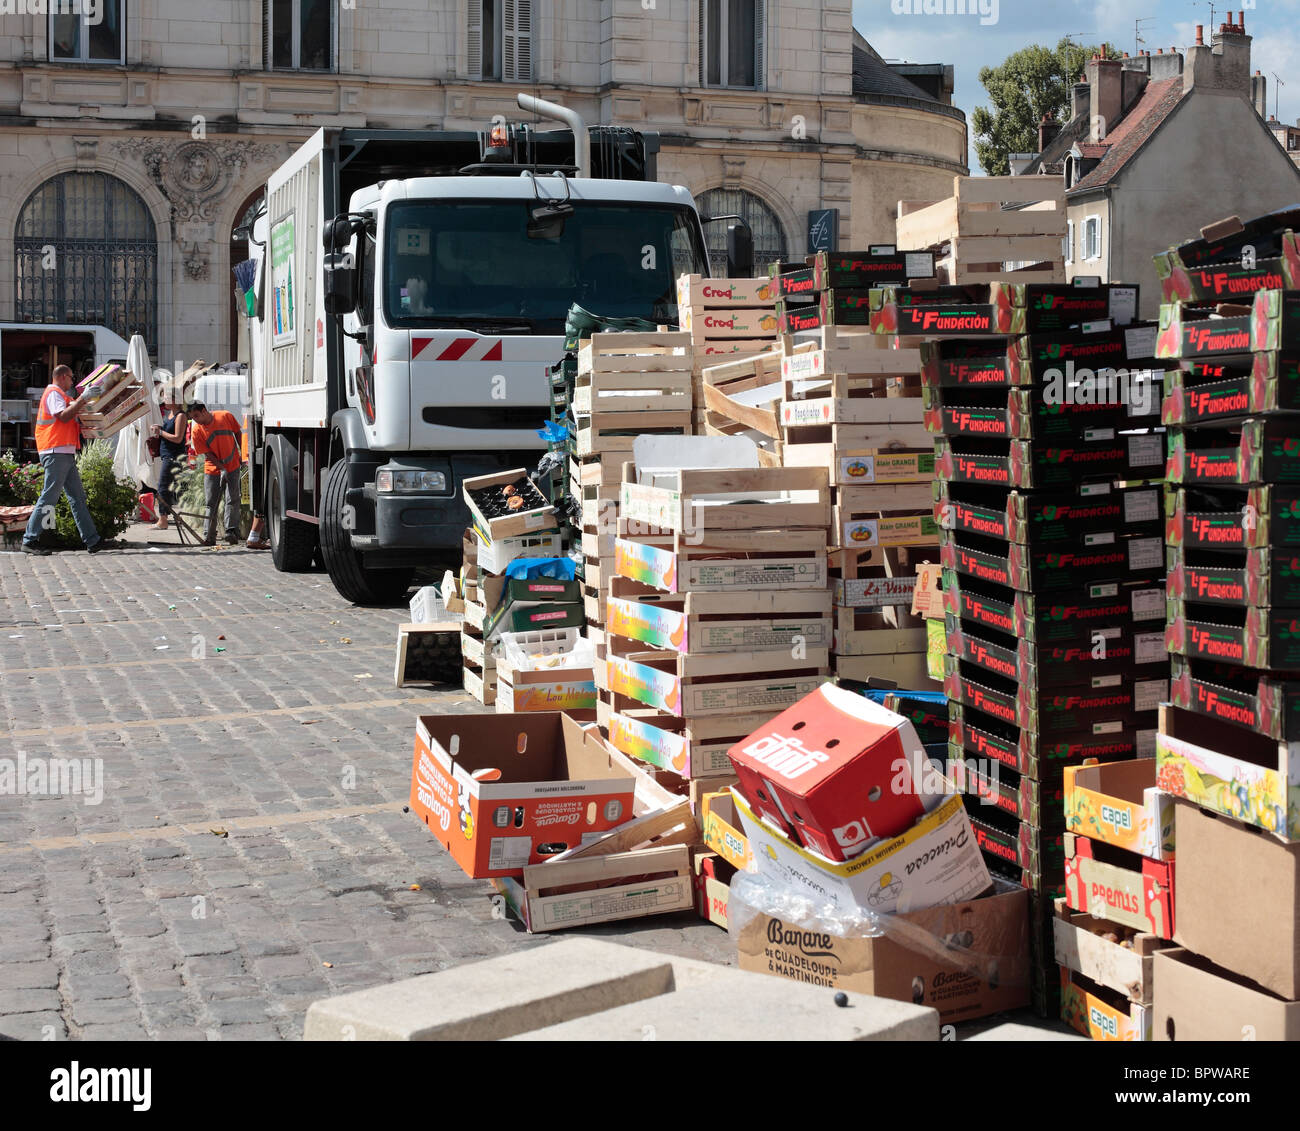 Rubbish Collection after a French Market in Beaune, France. - Stock Image